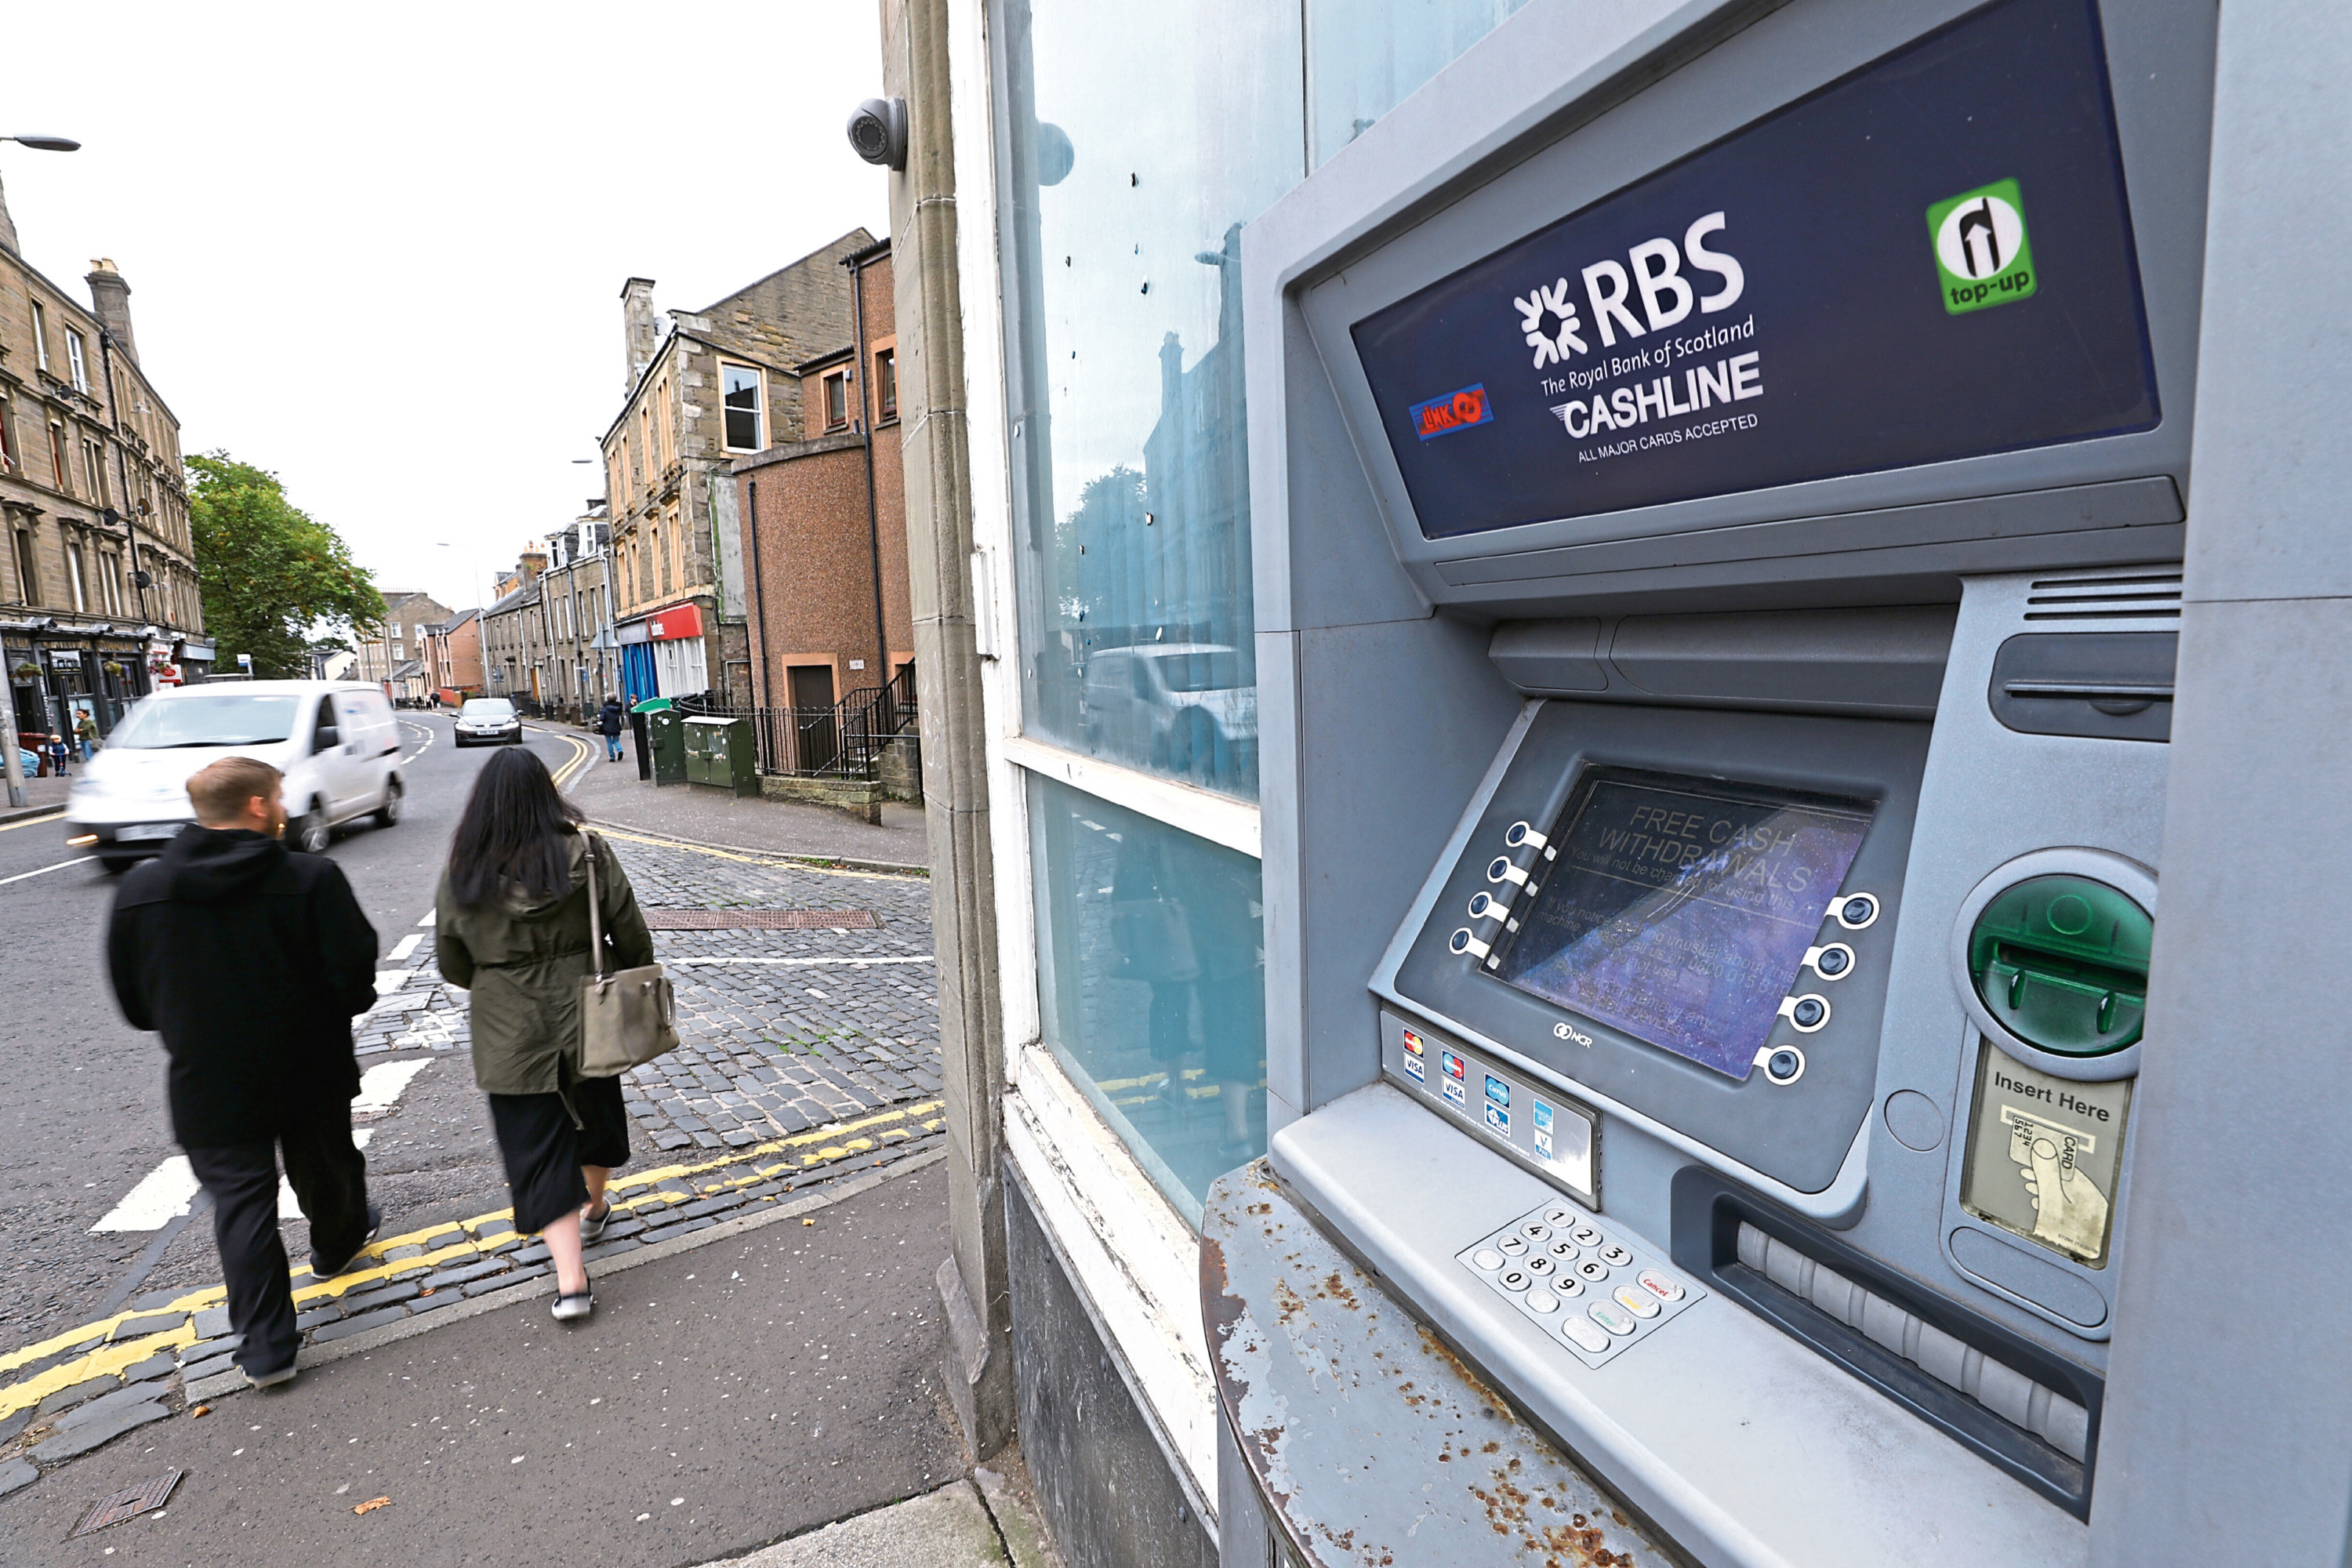 It is hoped the move will stop older people who should be self-isolating from leaving the house to go to the bank